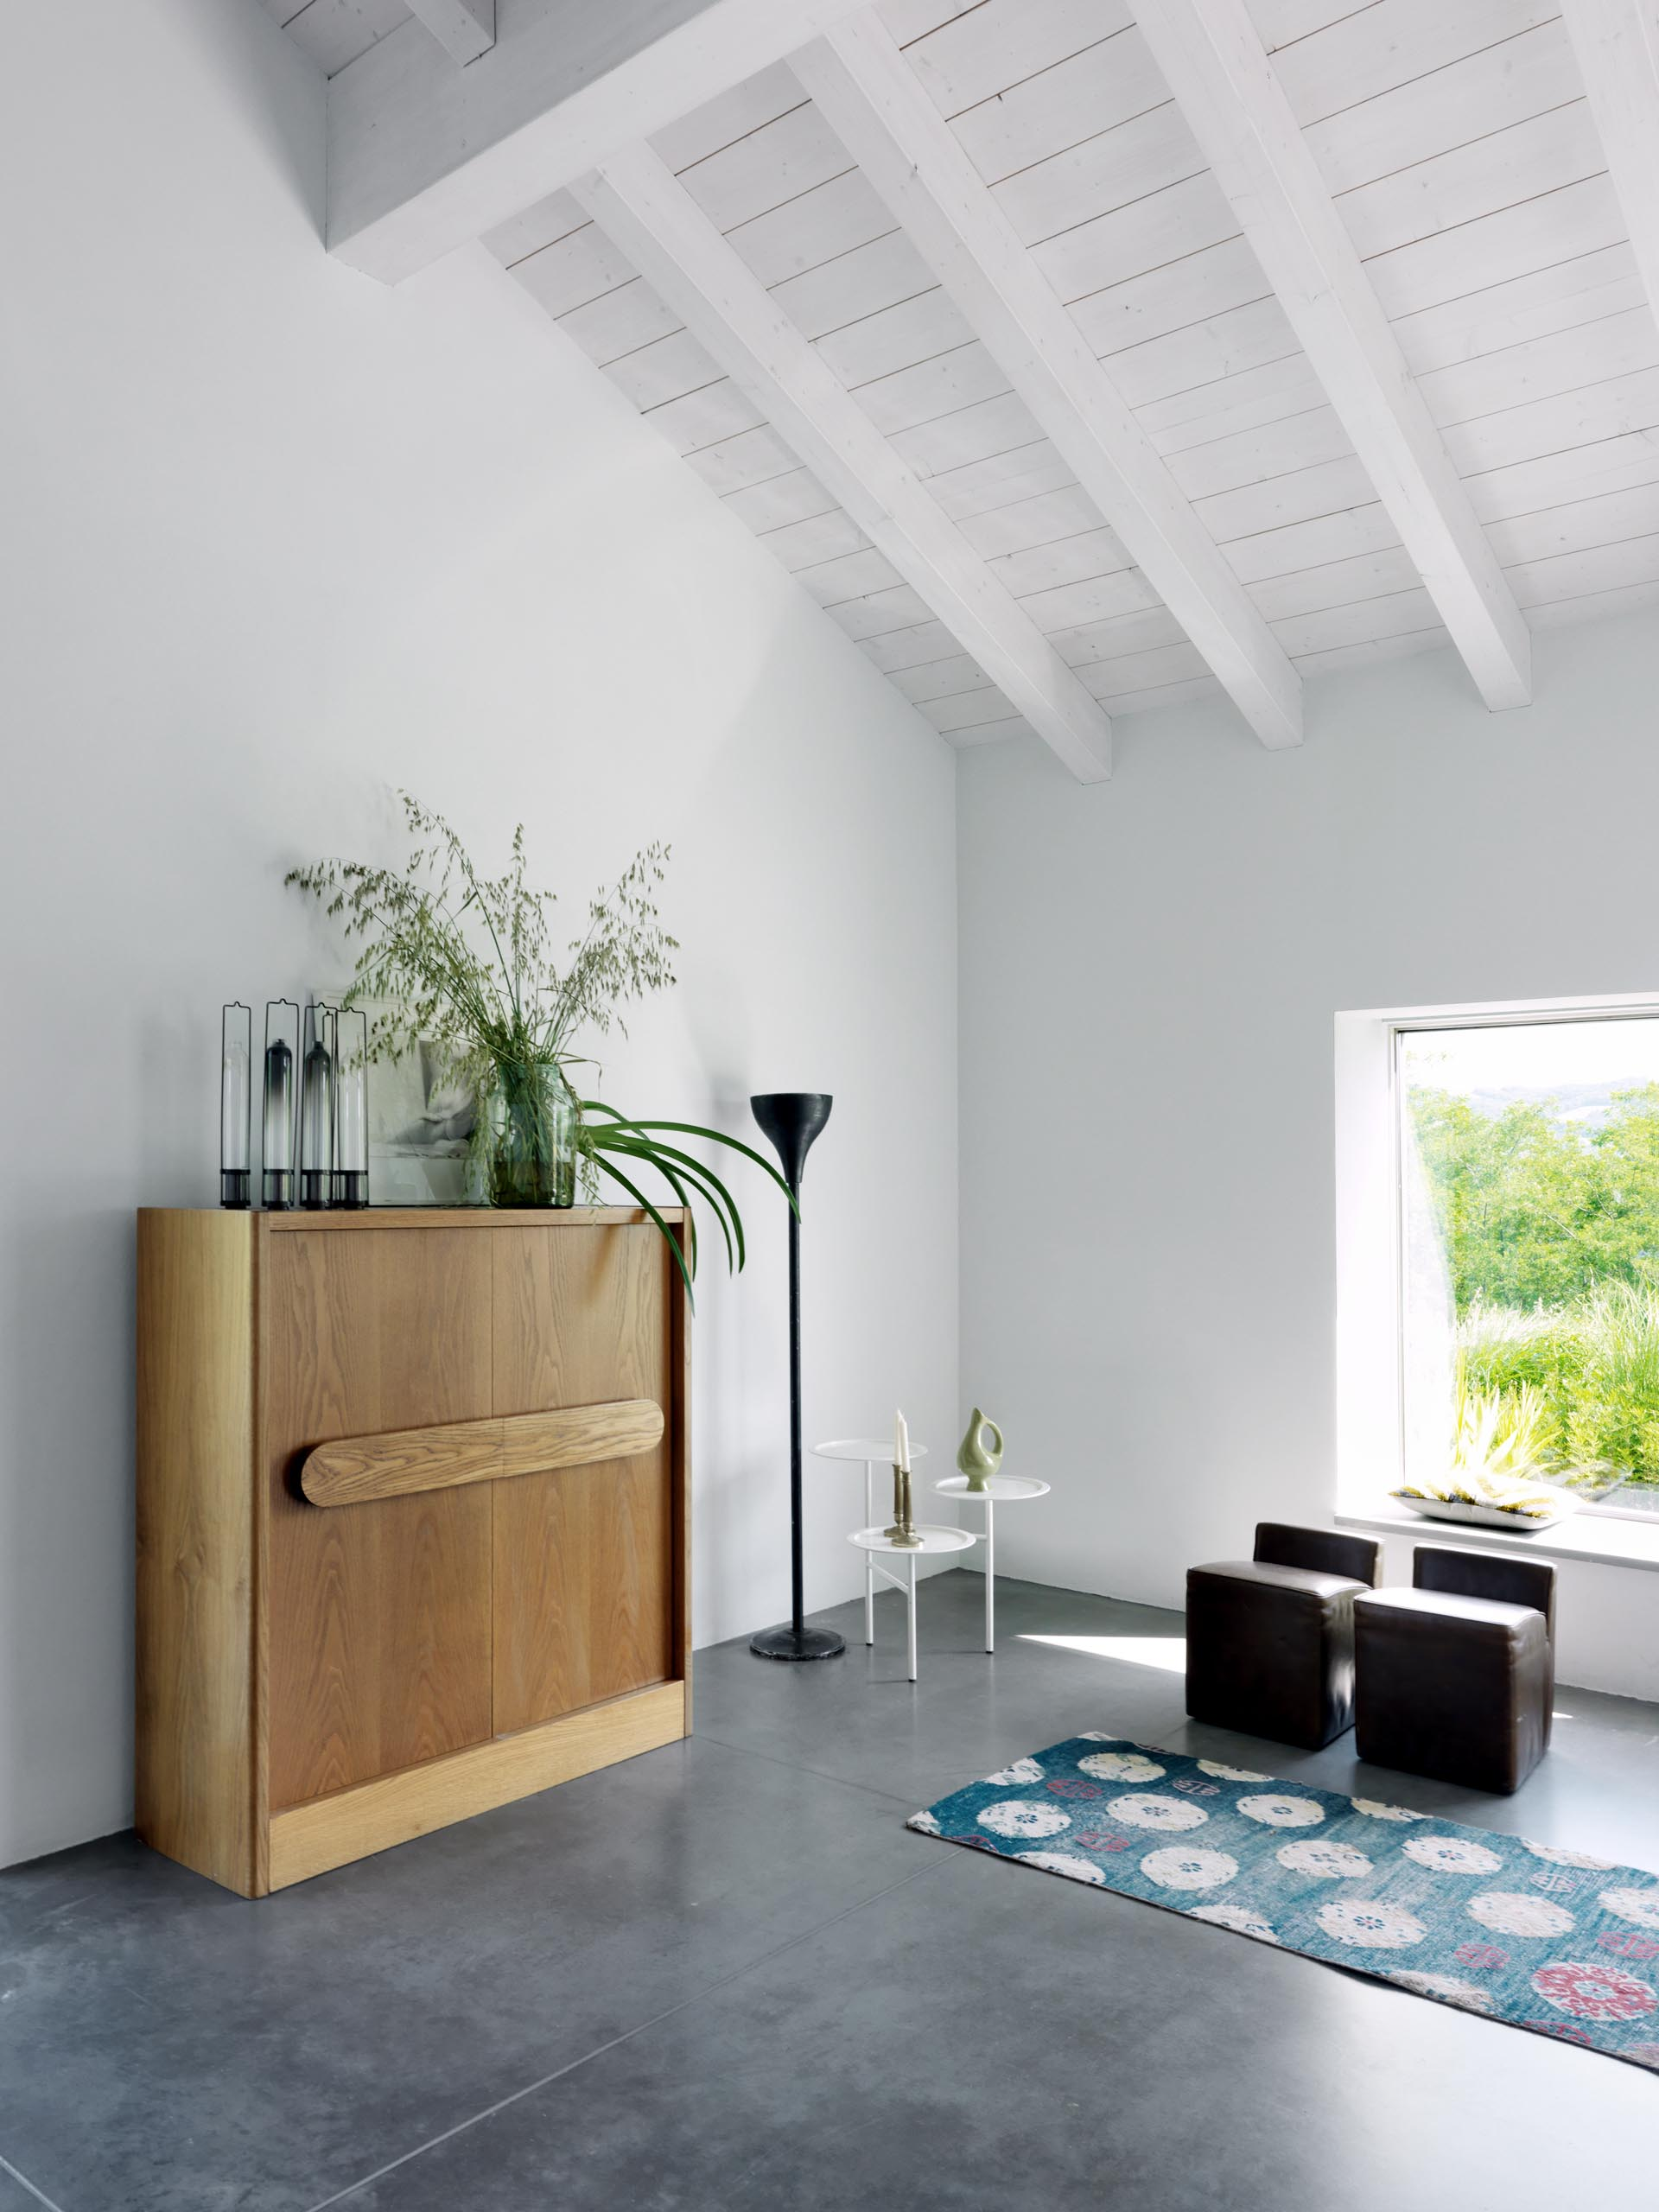 A minimally furnished room in a modern country farmhouse.